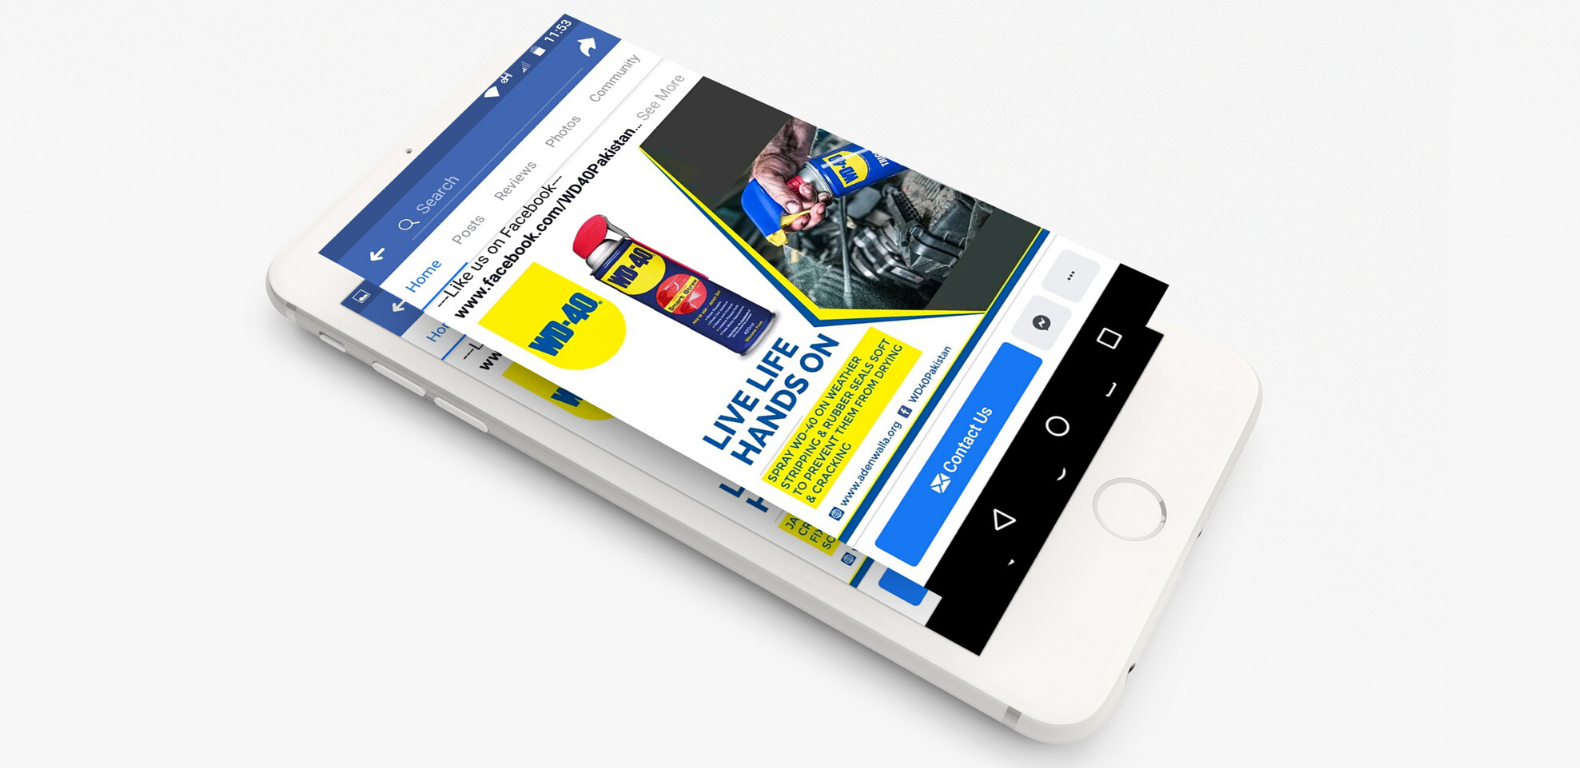 WD40-Pakistan-facebook-marketing-posts